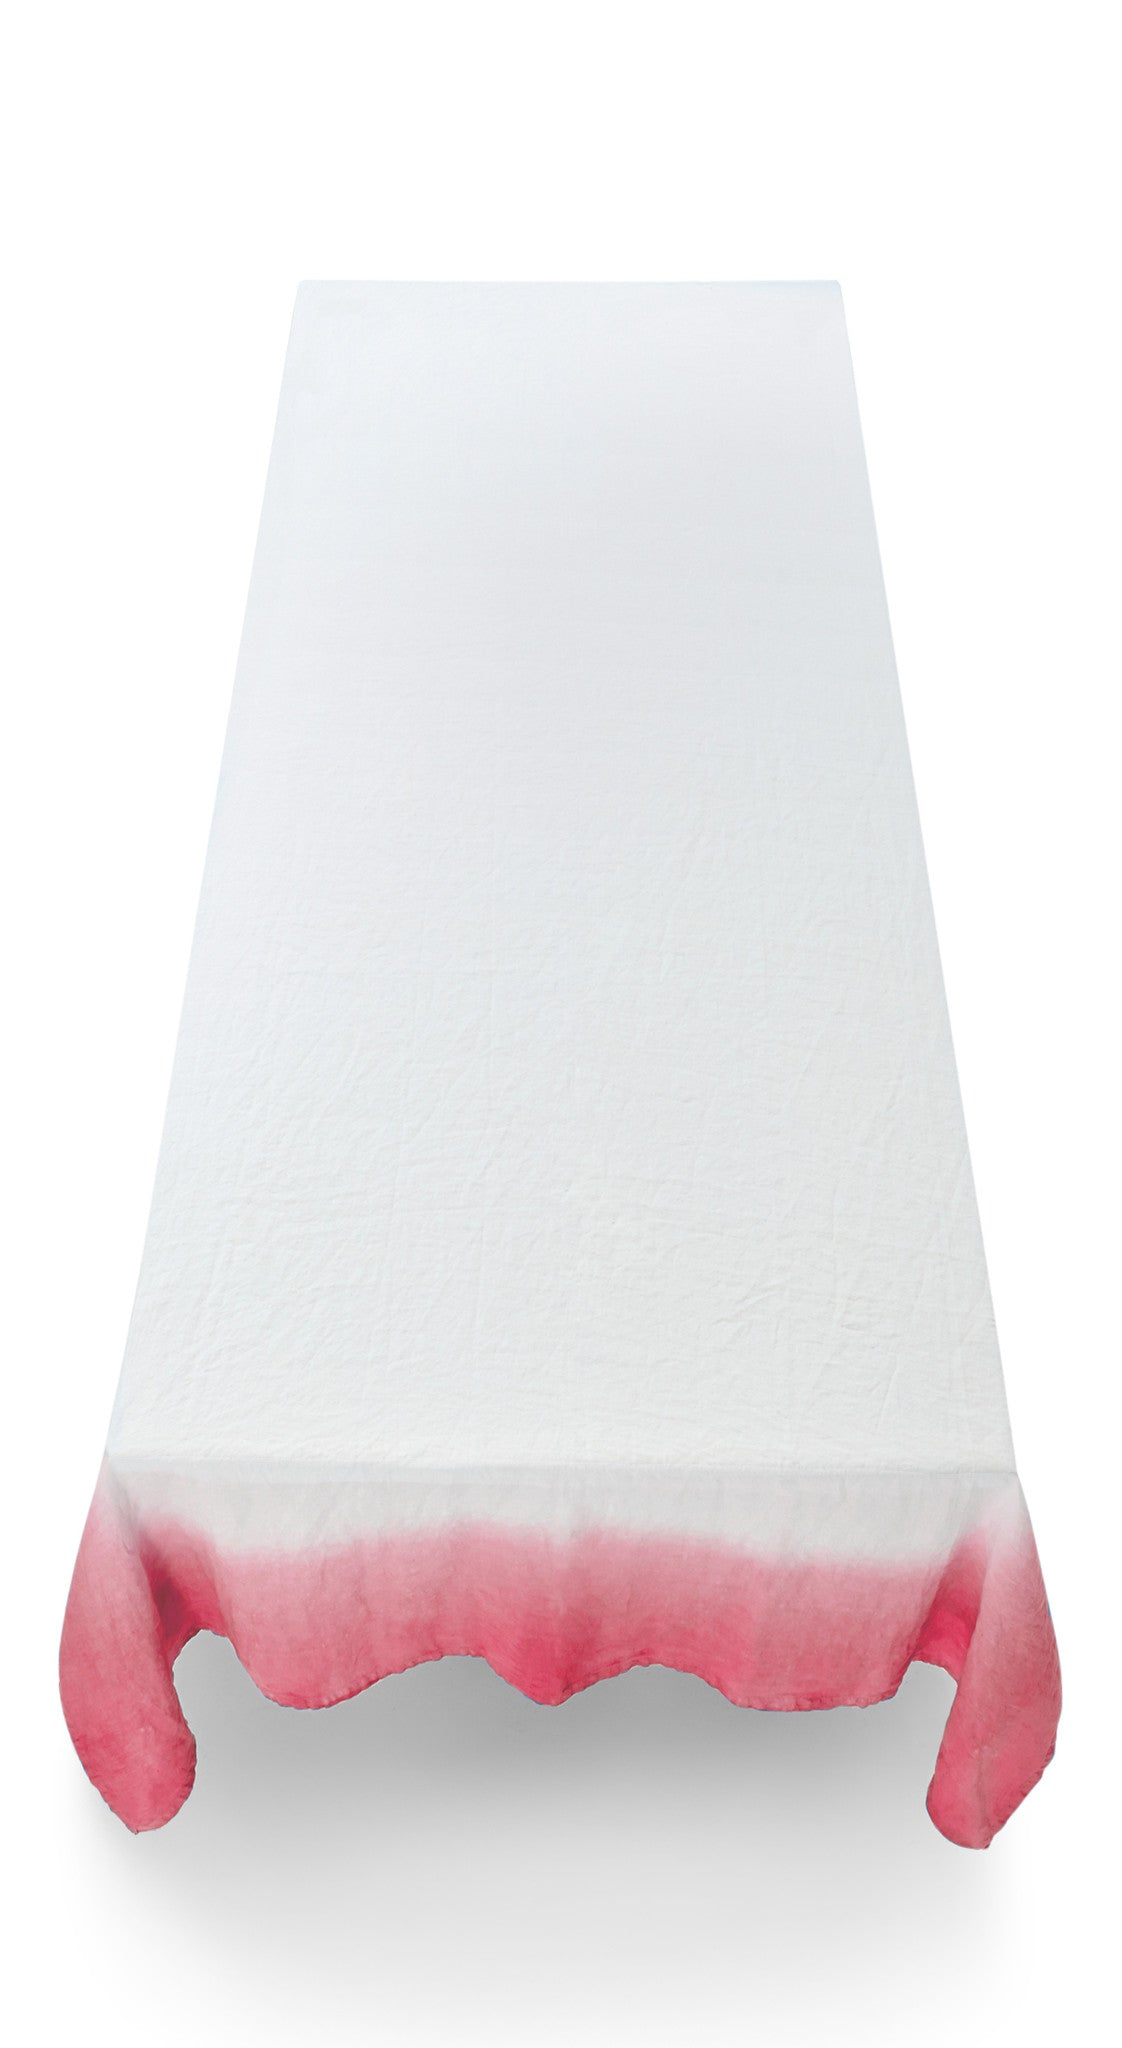 Fade Linen Tablecloth in Dark Pink